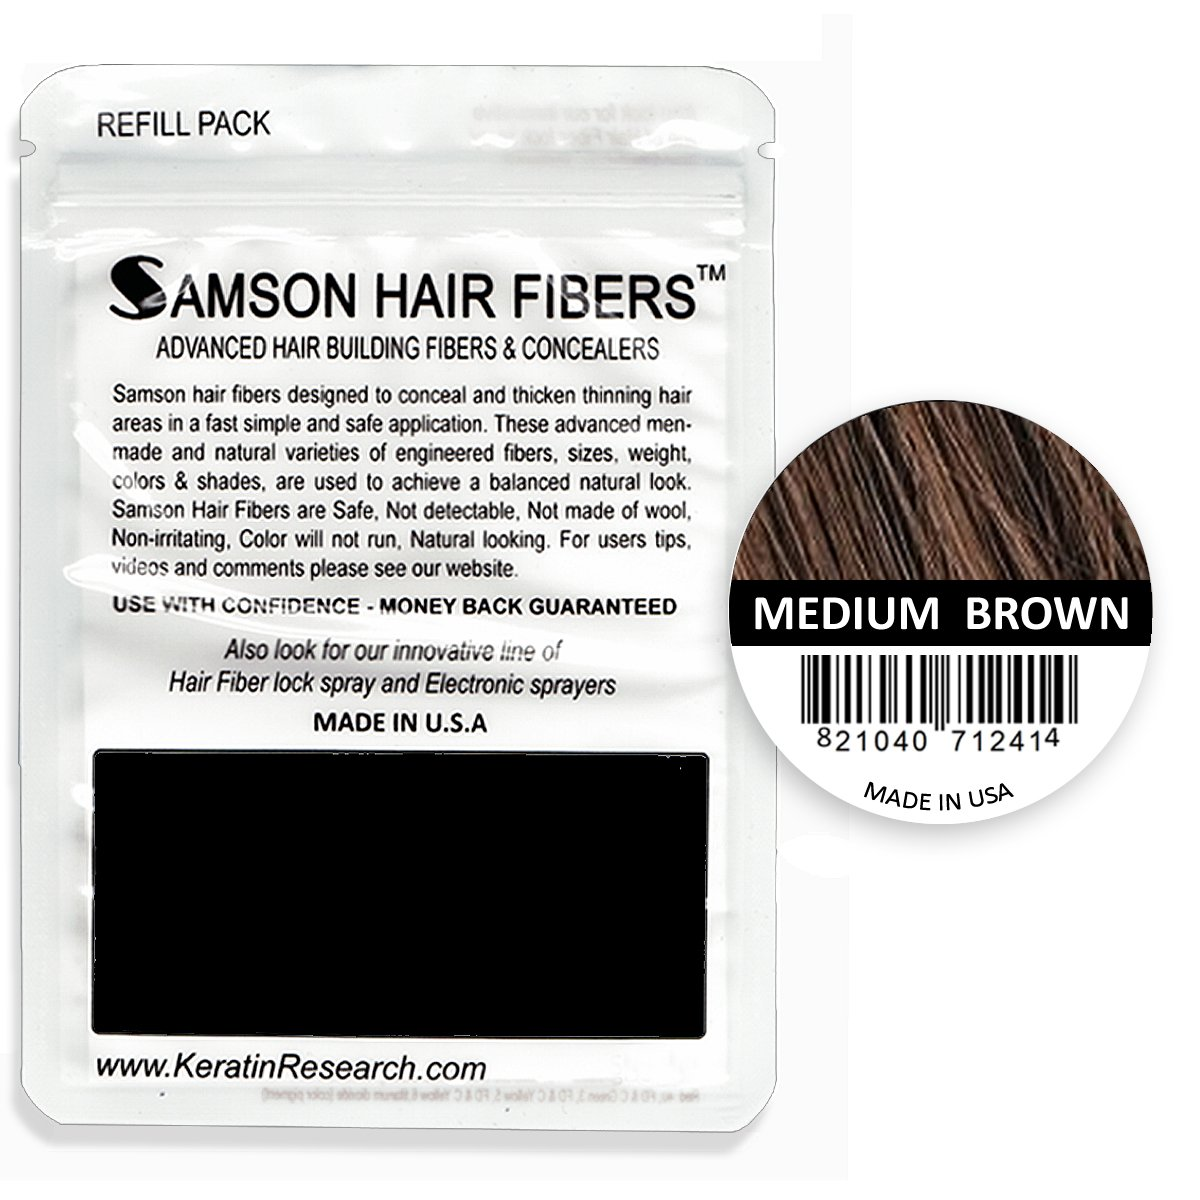 Refillable Container Hair Fibers by Samson, Medium Brown 25gr, Hide Hair Loss Concealer Building Fibers, Hide Hair Transplant Concealer Coverage, Refillable Container for all brand names